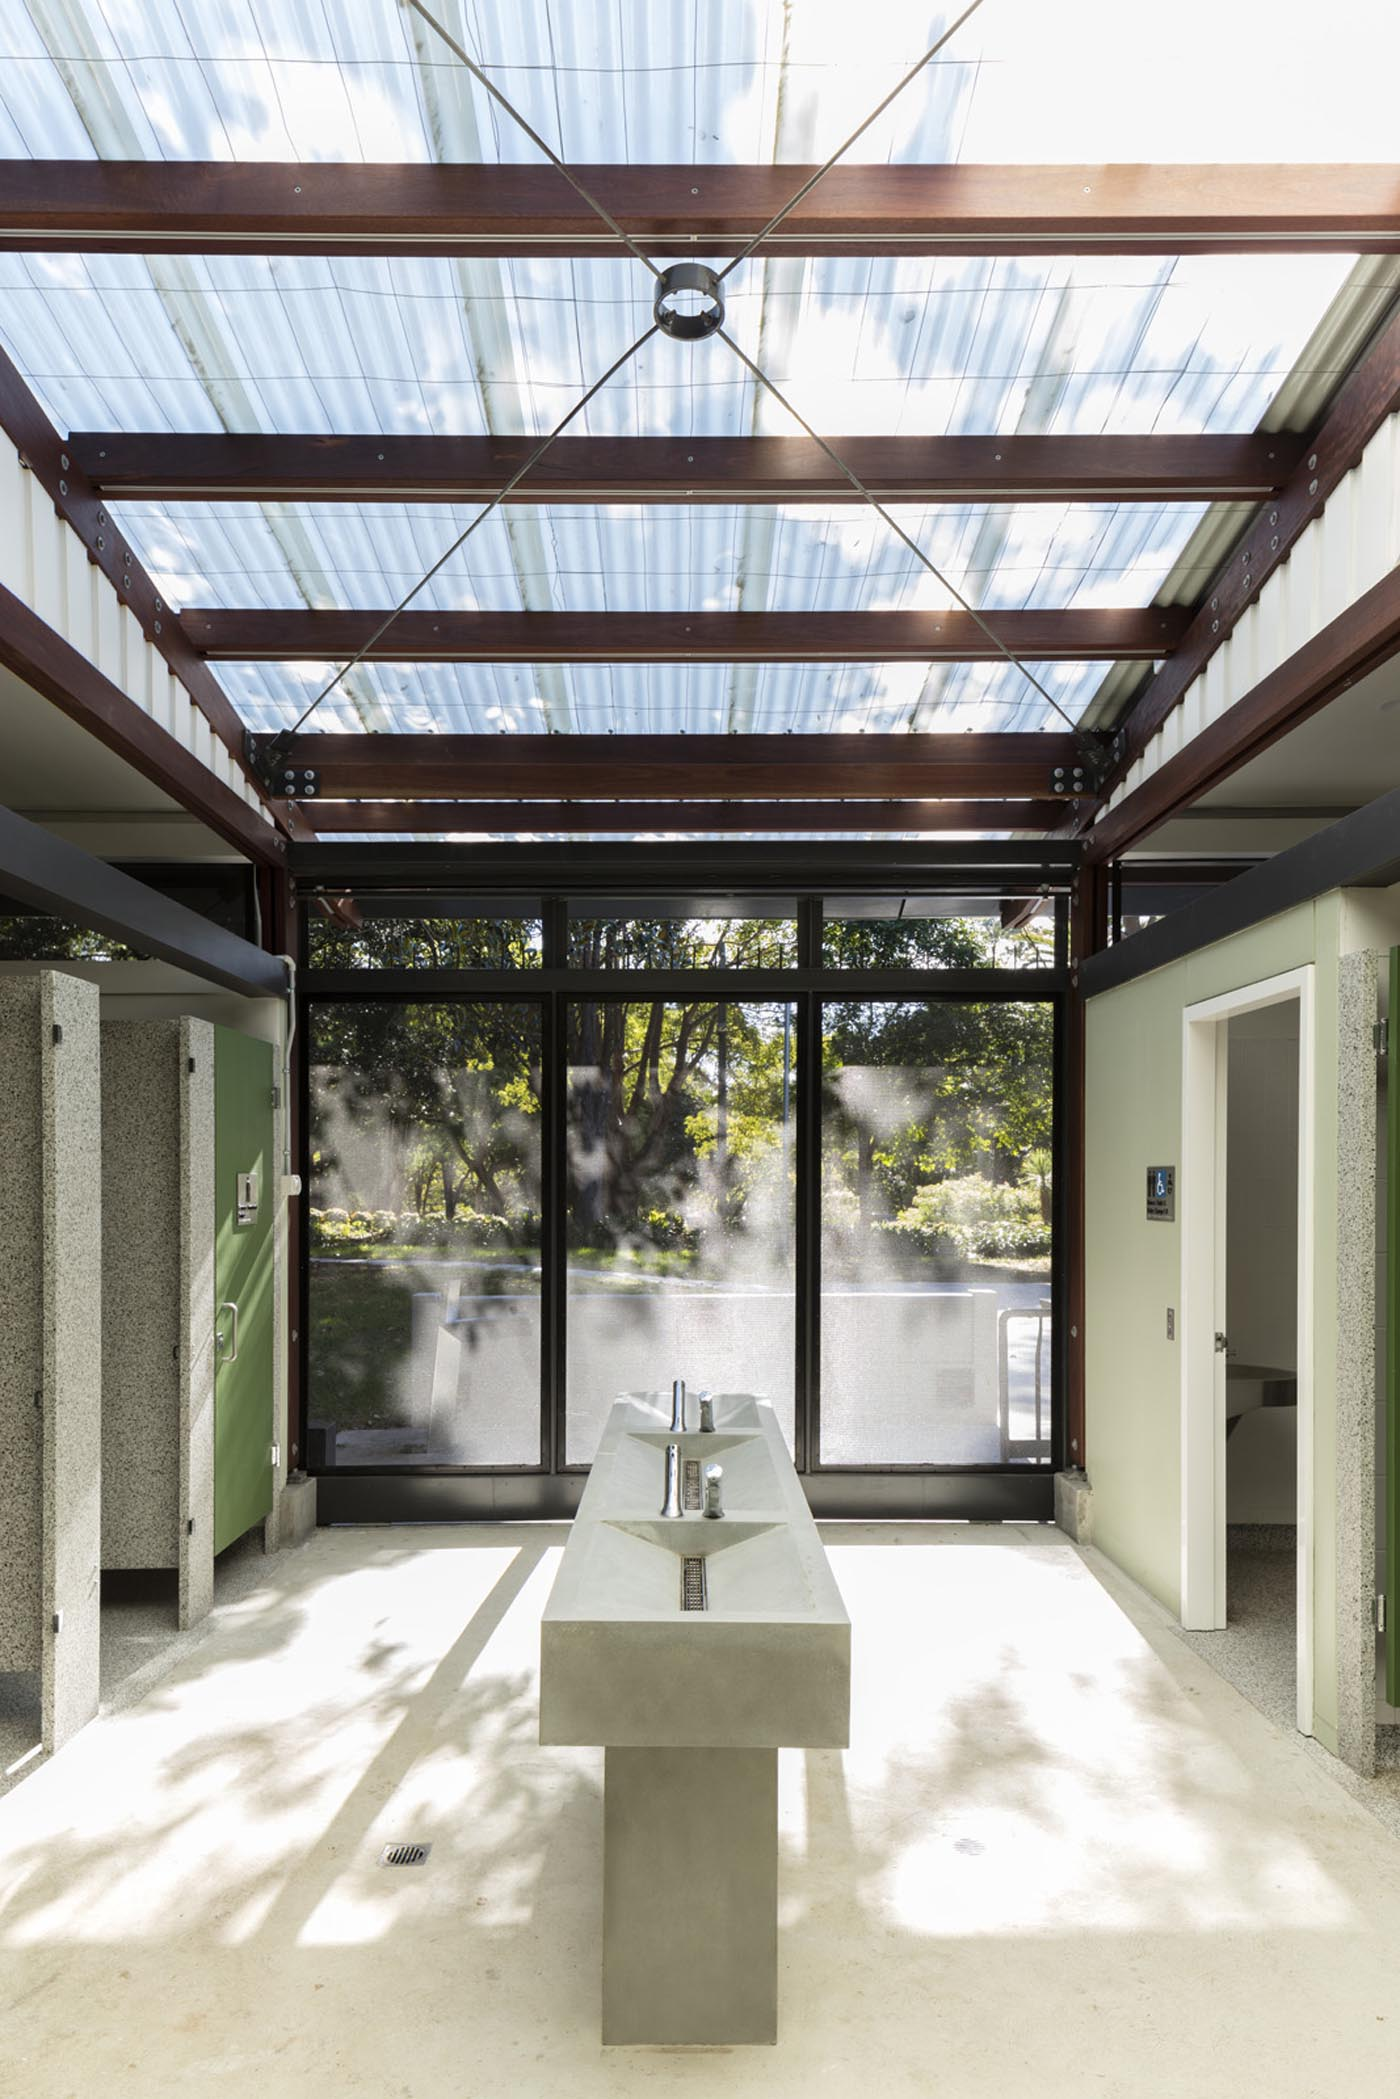 Cabarita Park Conservatory by award winning public architectural firm Sam Crawford Architects. Light filtered through translucent corrugated roof to concrete wash basin